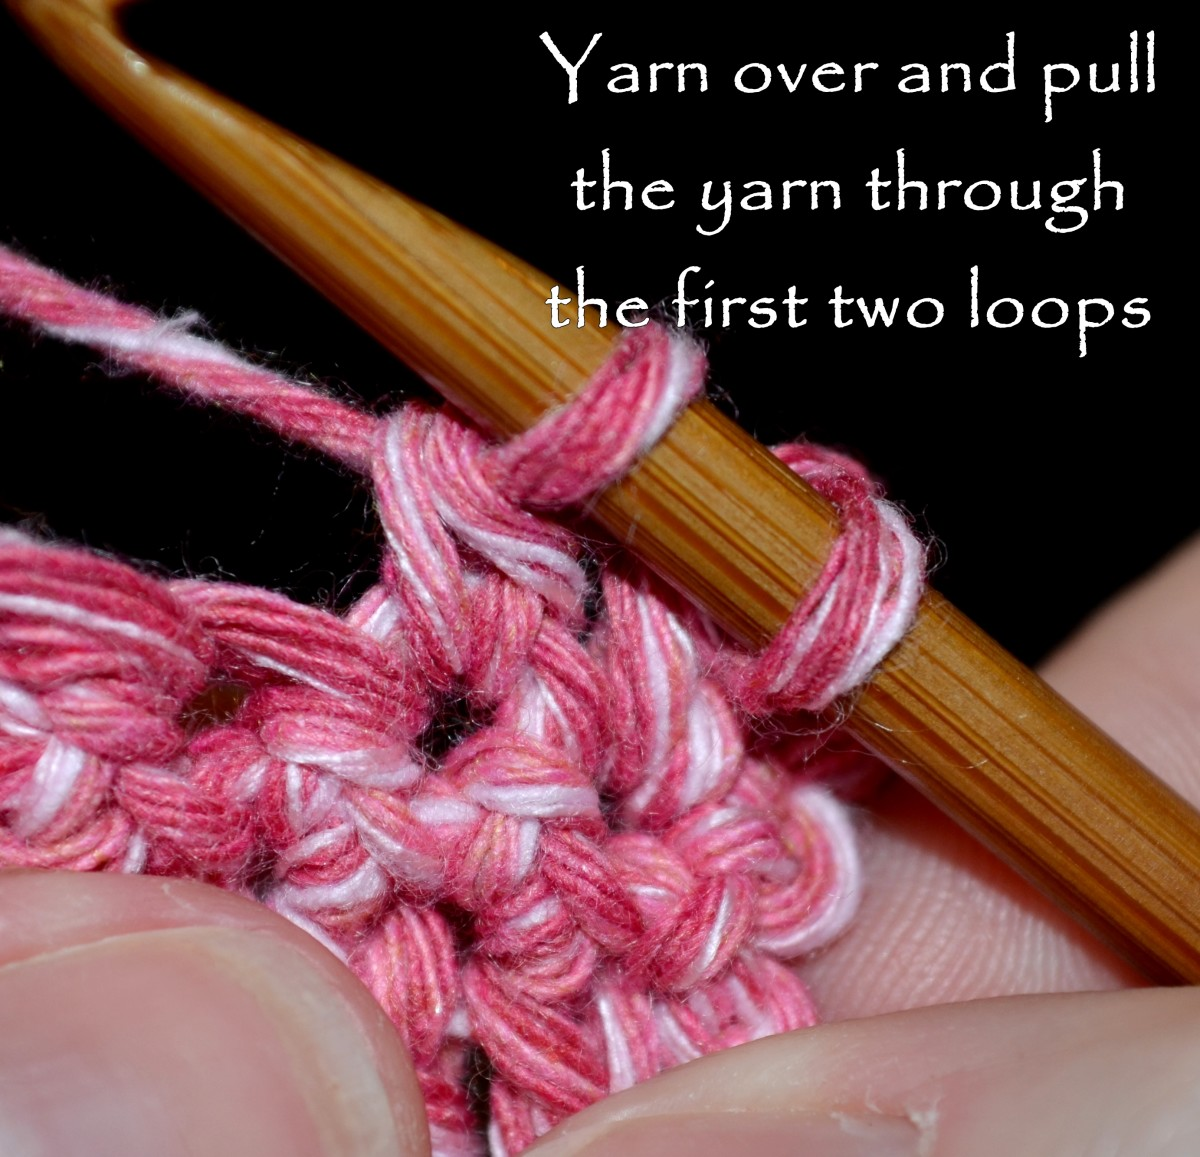 Yarn over and pull the yarn through the first two loops on the hook.